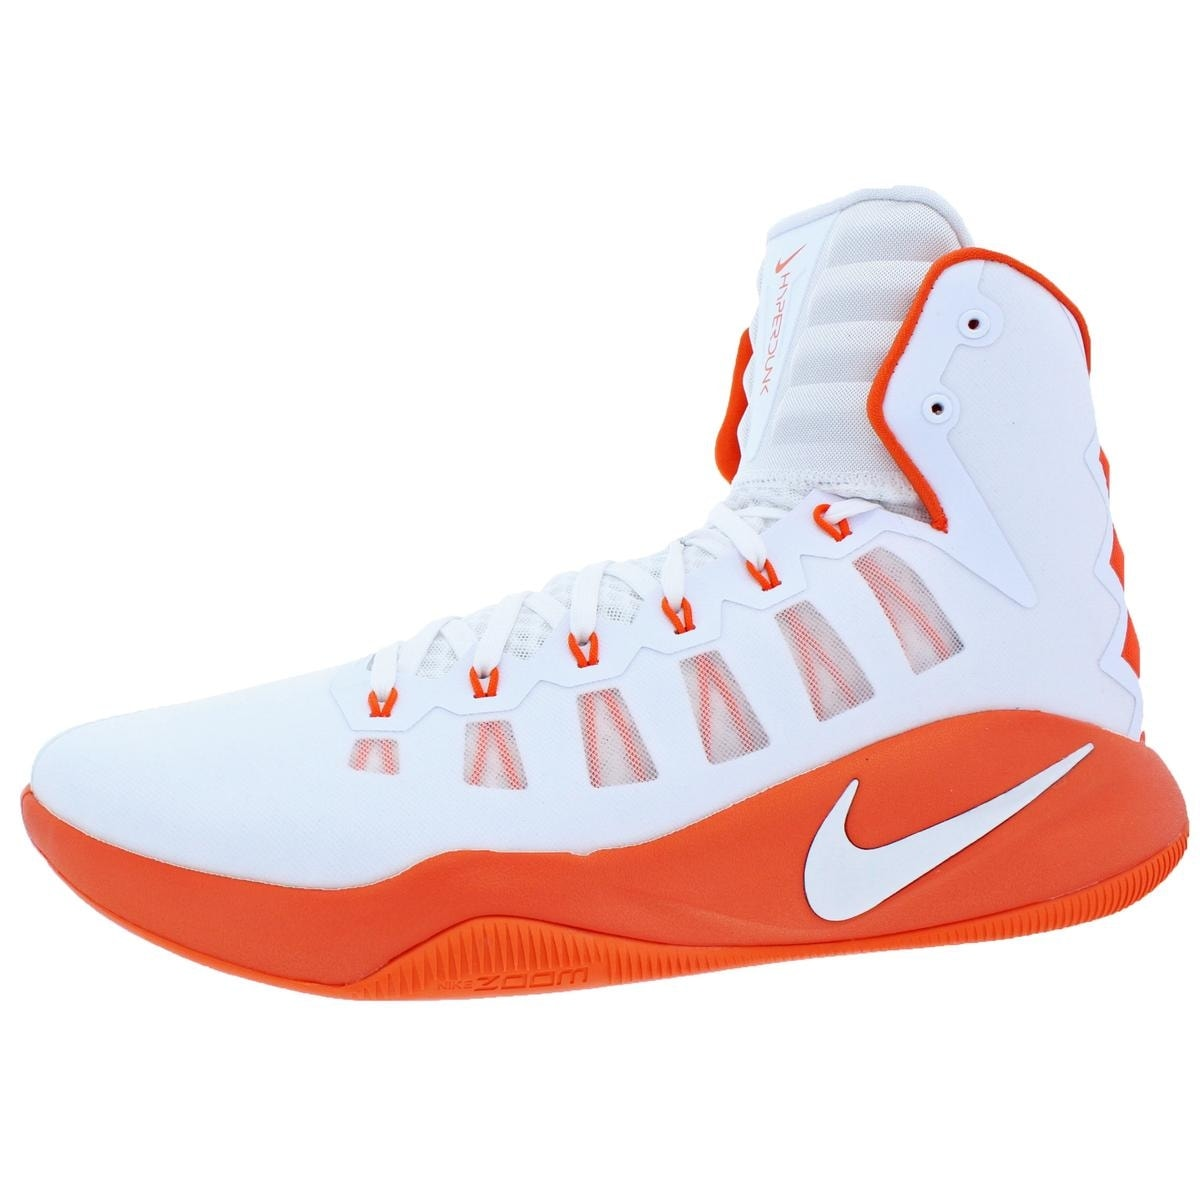 the best attitude cb750 d6106 Shop Nike Mens Hyperdunk 2016 TB Promo Basketball Shoes Nike Zoom Trainer -  Free Shipping On Orders Over  45 - Overstock - 21942785